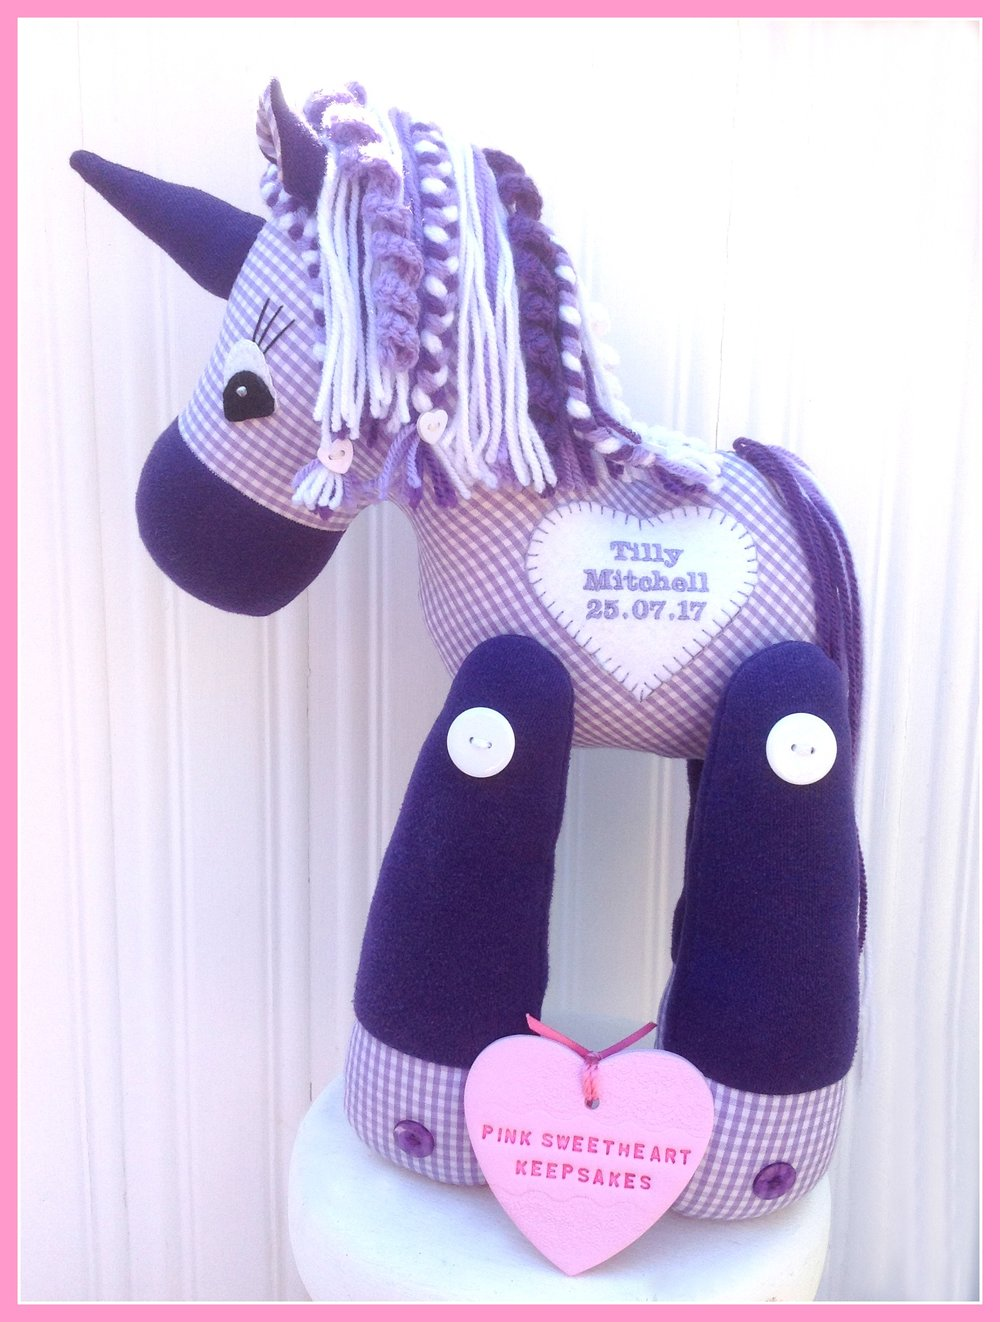 Tilly's School Uniform Unicorn